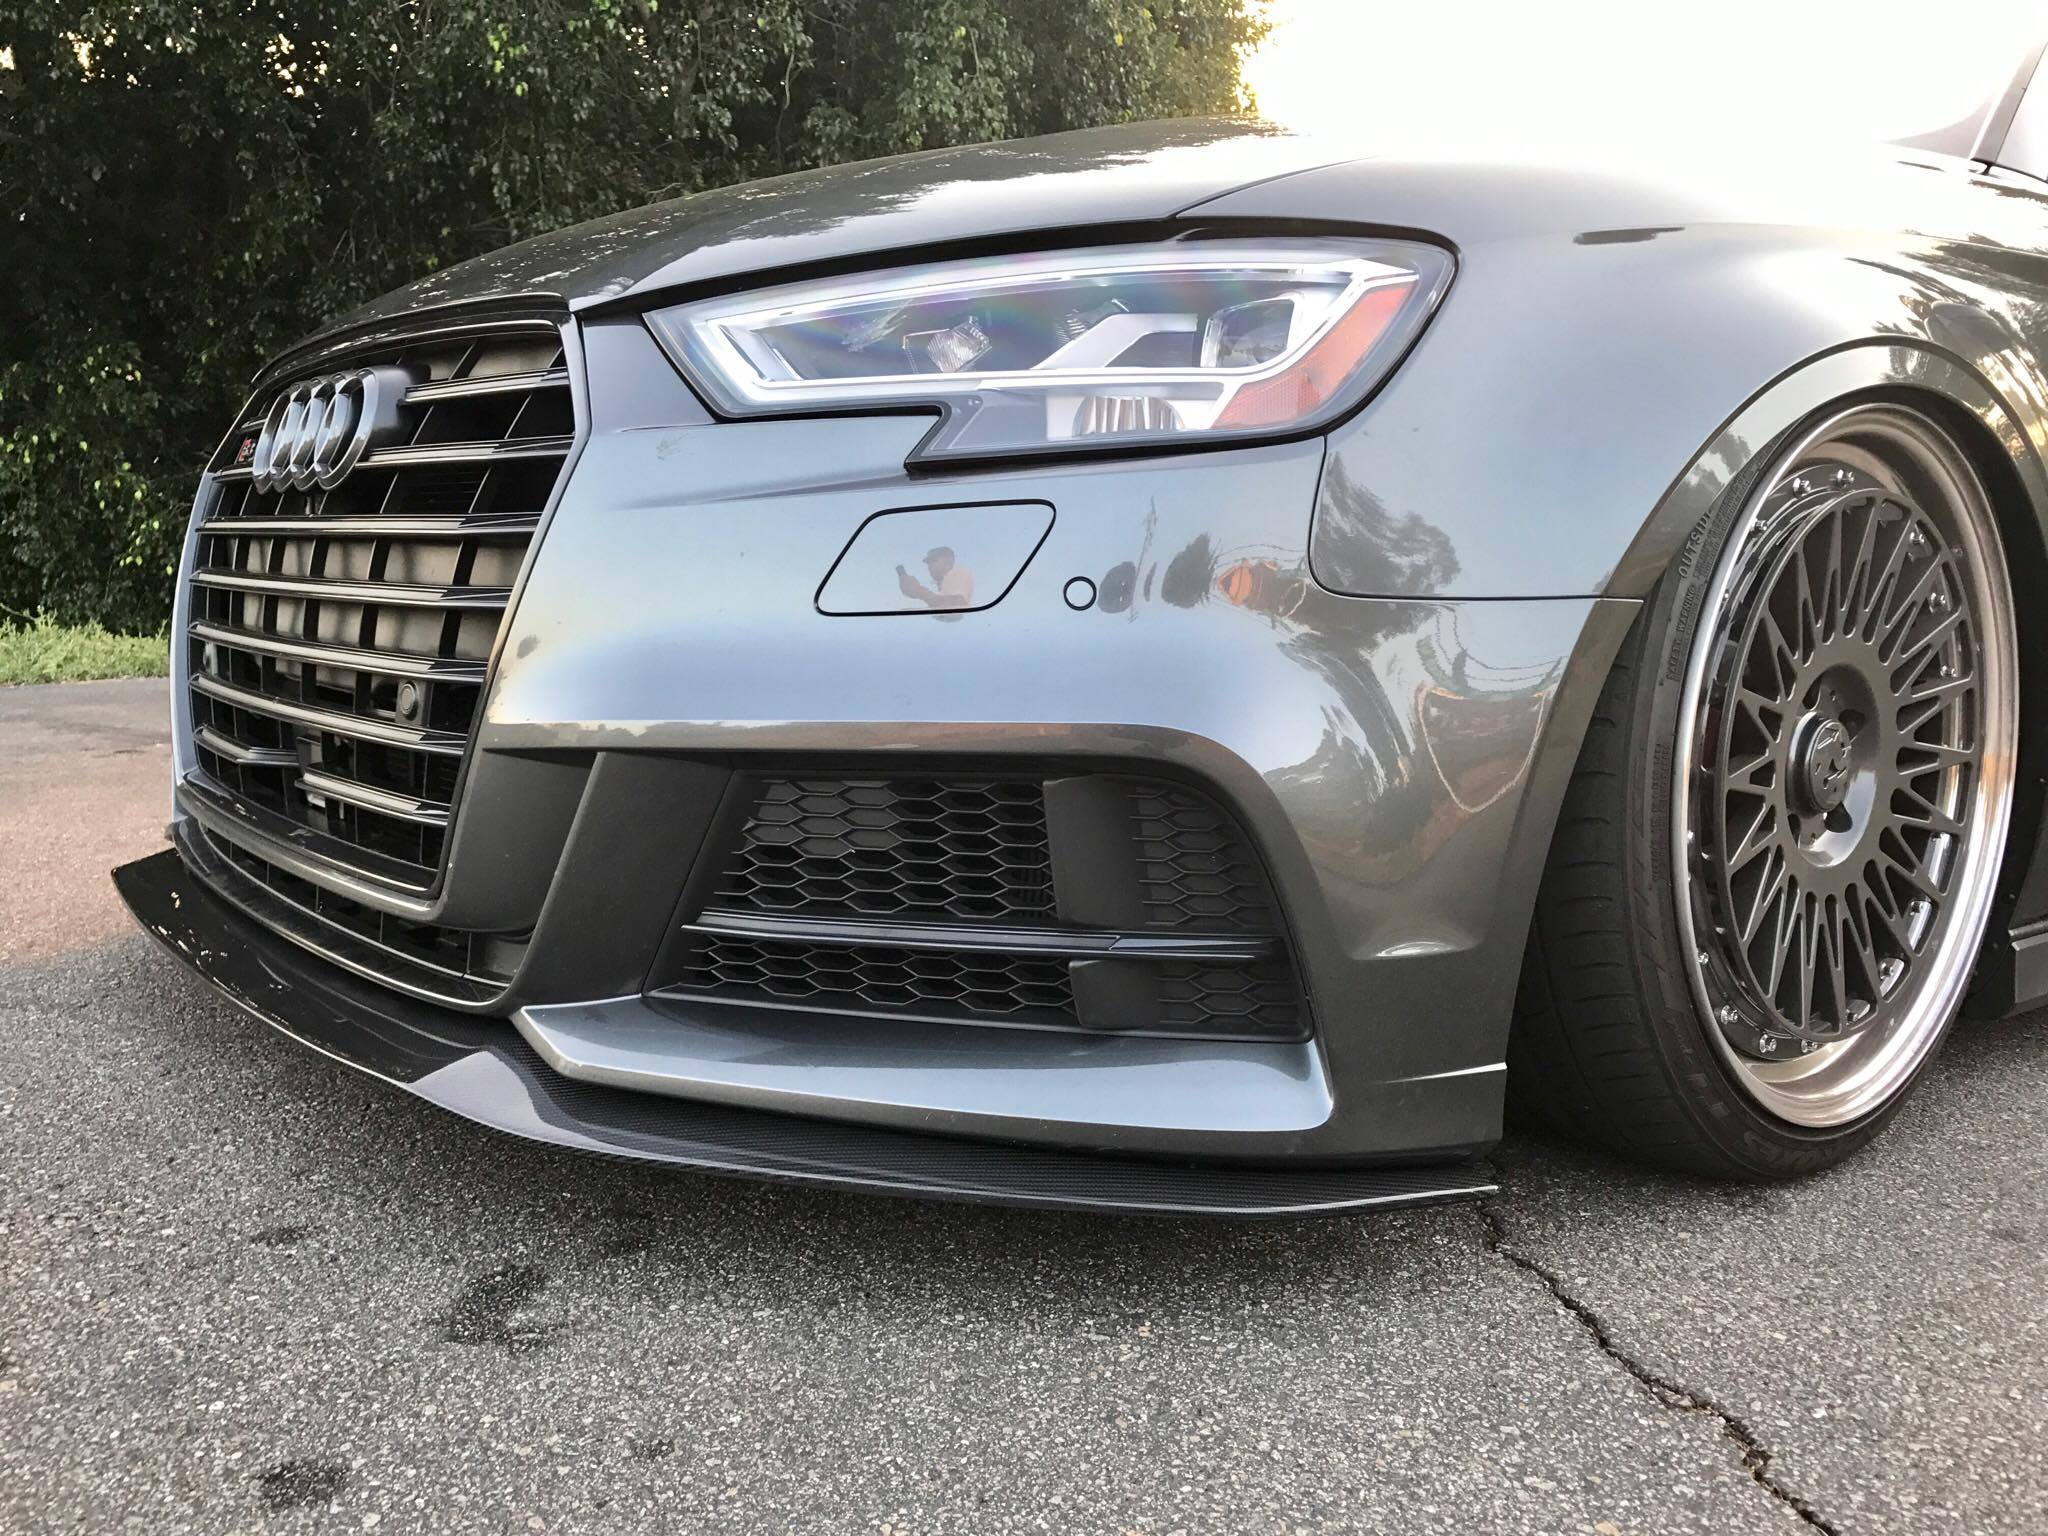 2017 audi s3 8v facelift aggressive carbon fiber front lip winn autosports. Black Bedroom Furniture Sets. Home Design Ideas